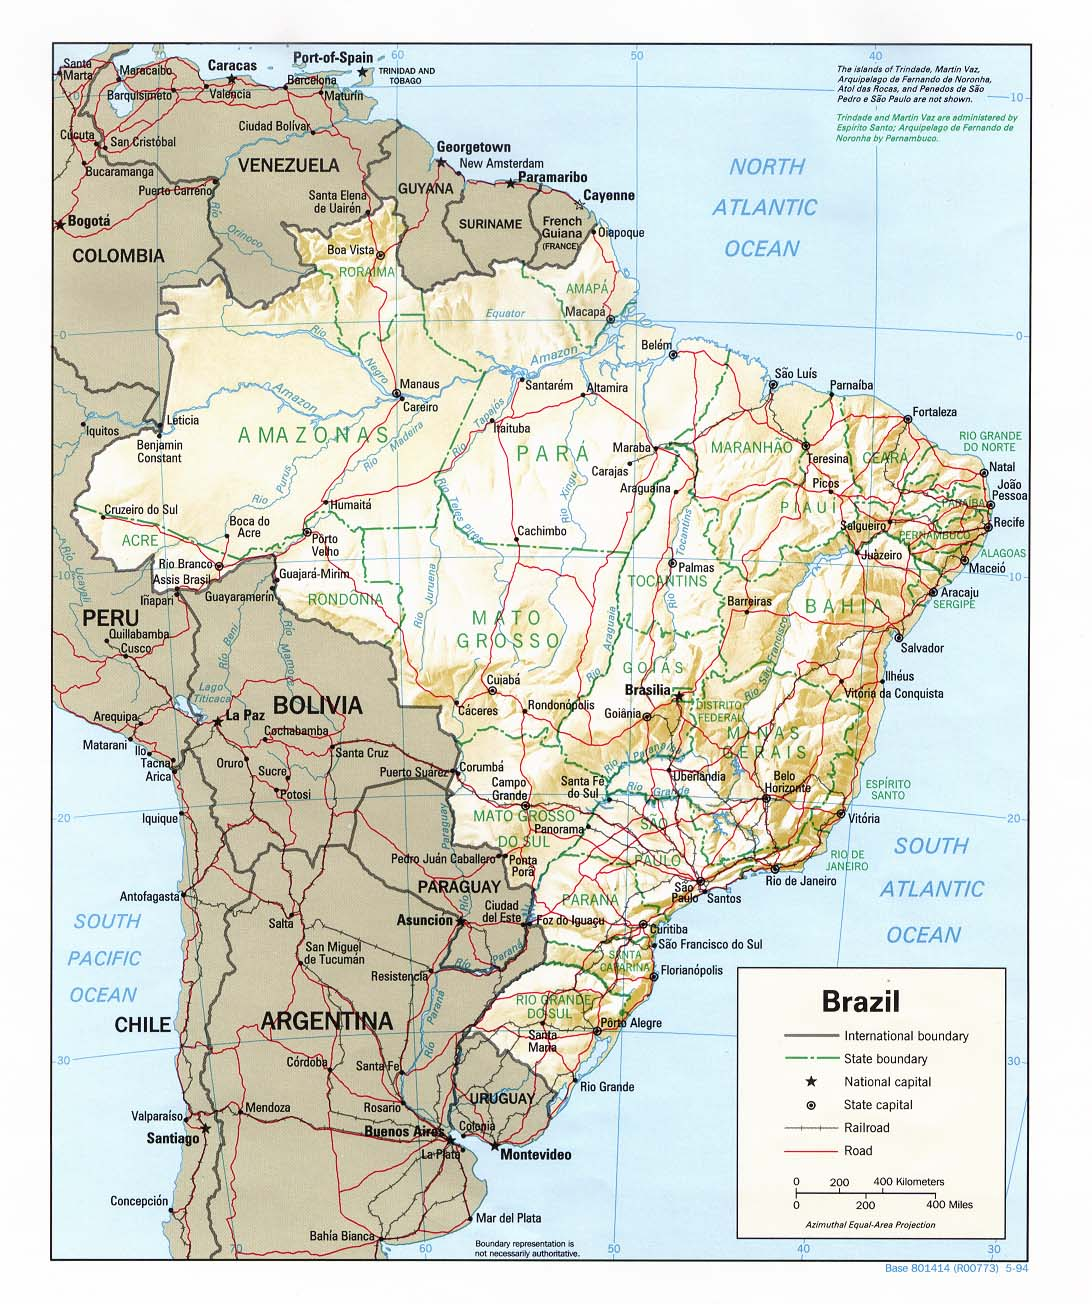 Brazil Shading Relief Map 1994